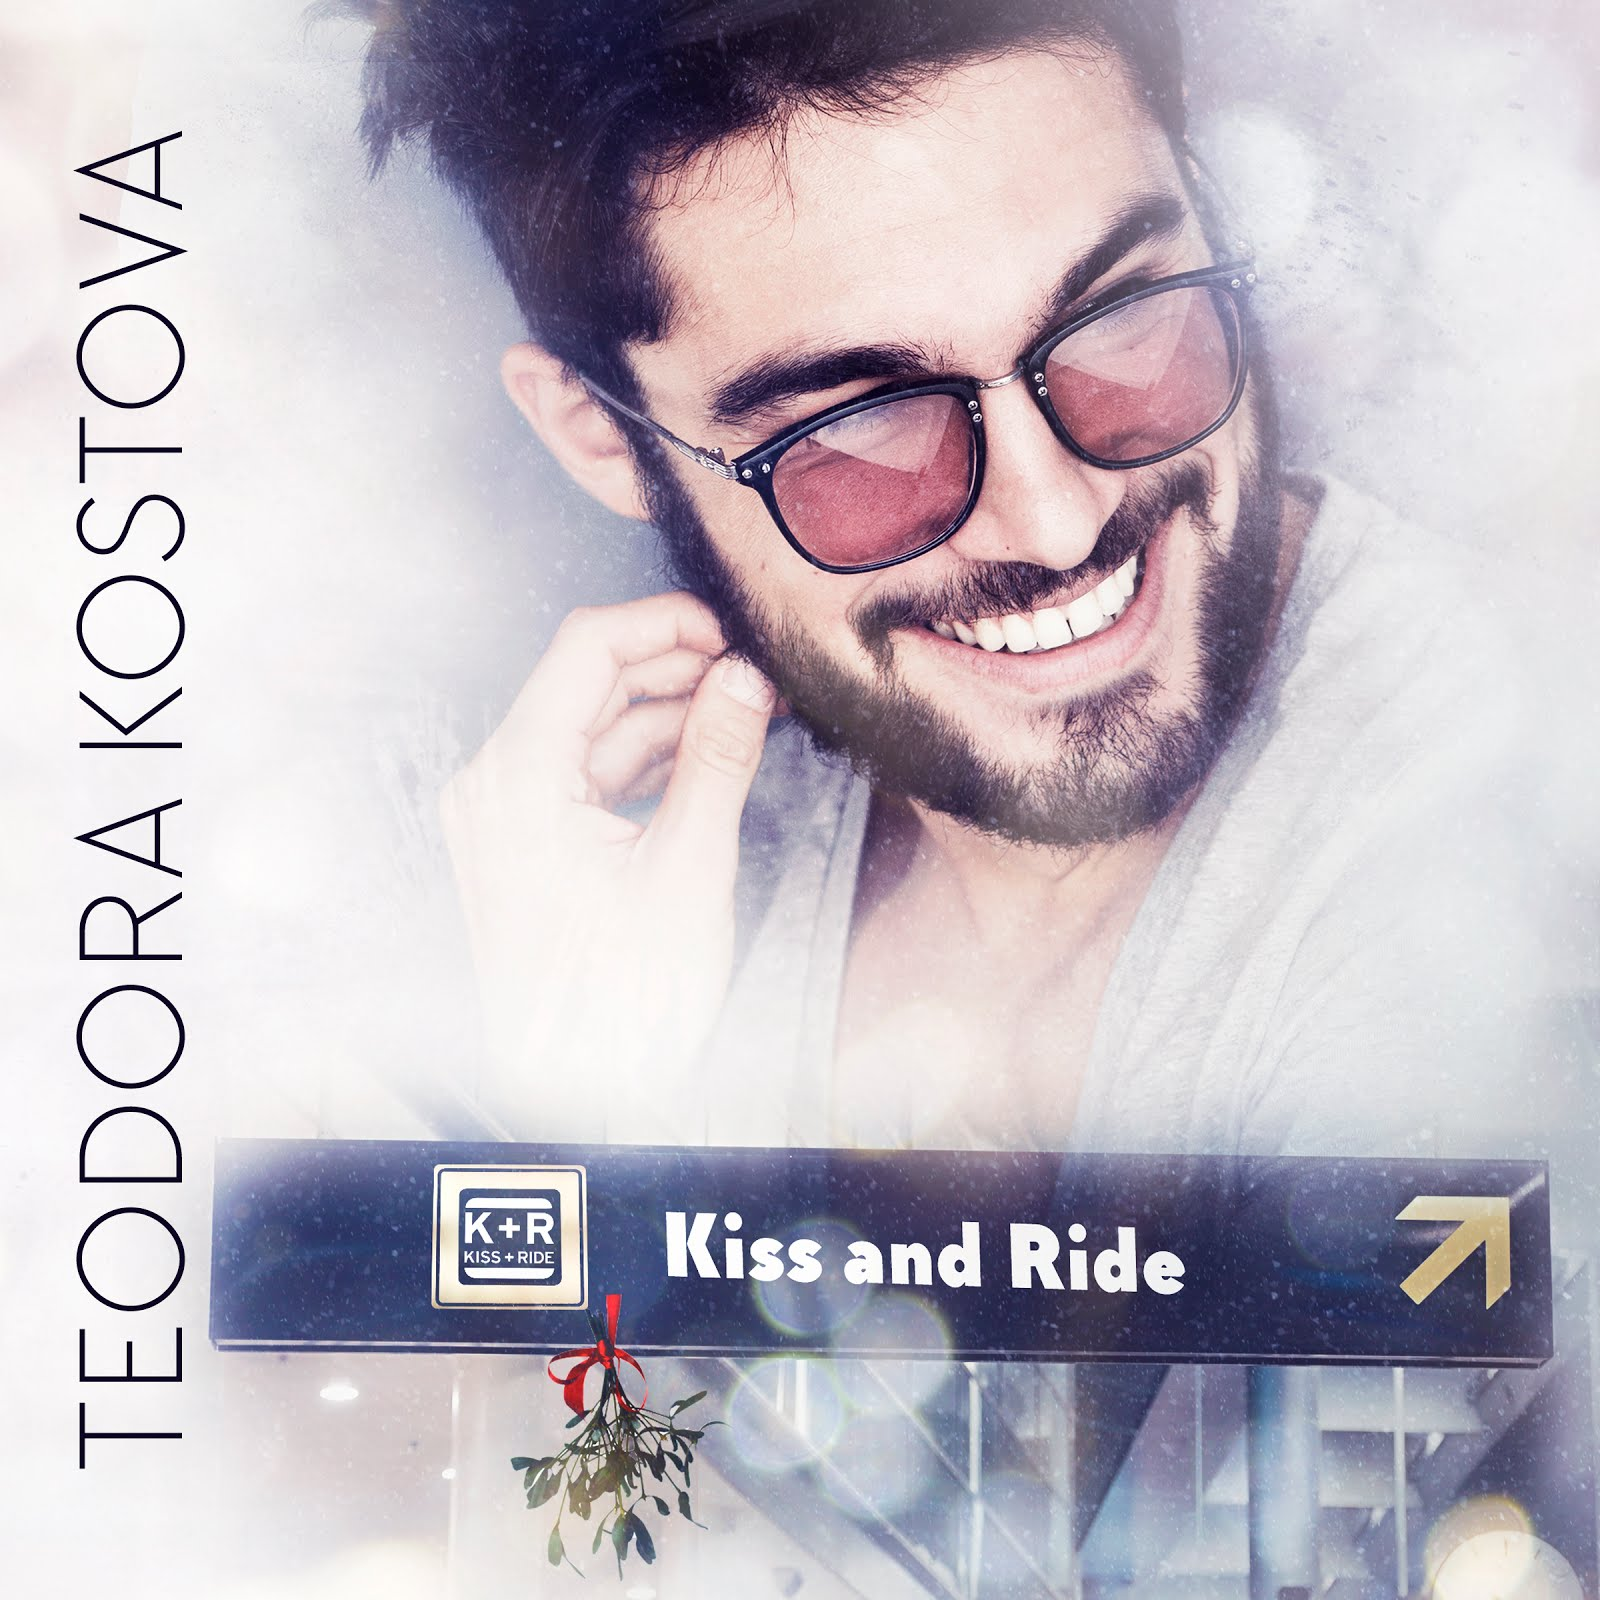 Kiss and Ride audio book